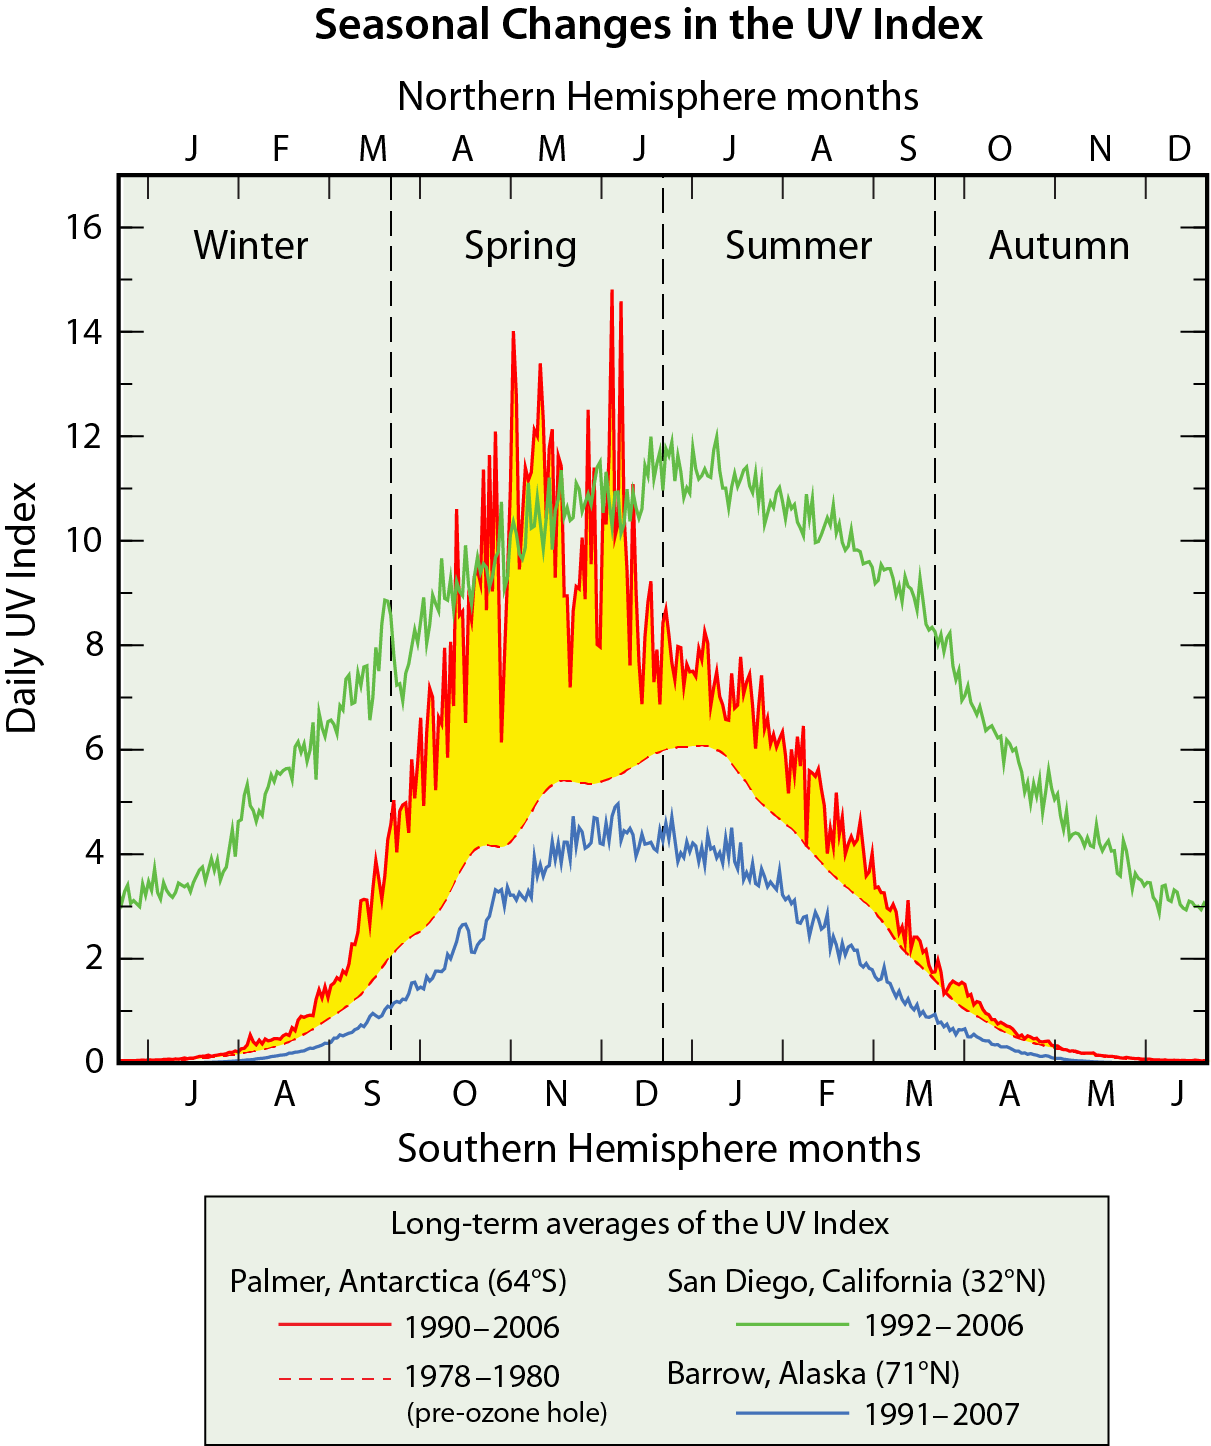 Seasonal Changes in the UV Index